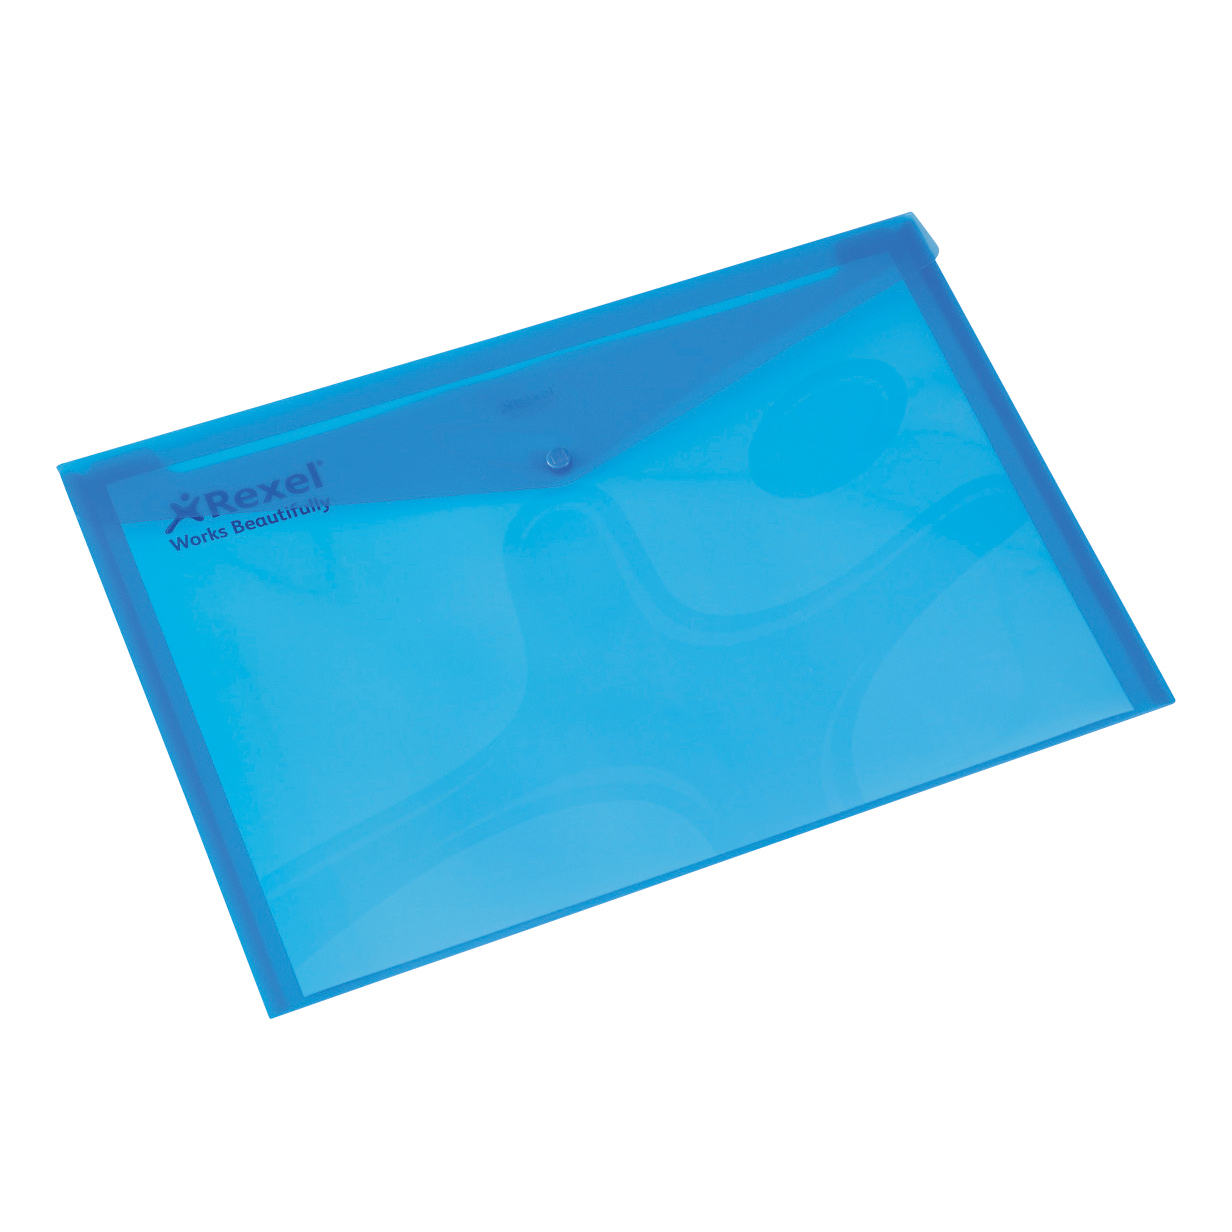 Clip Files Rexel Popper Wallet Folder Polypropylene A4 Translucent Blue Ref 16129Bu Pack 5